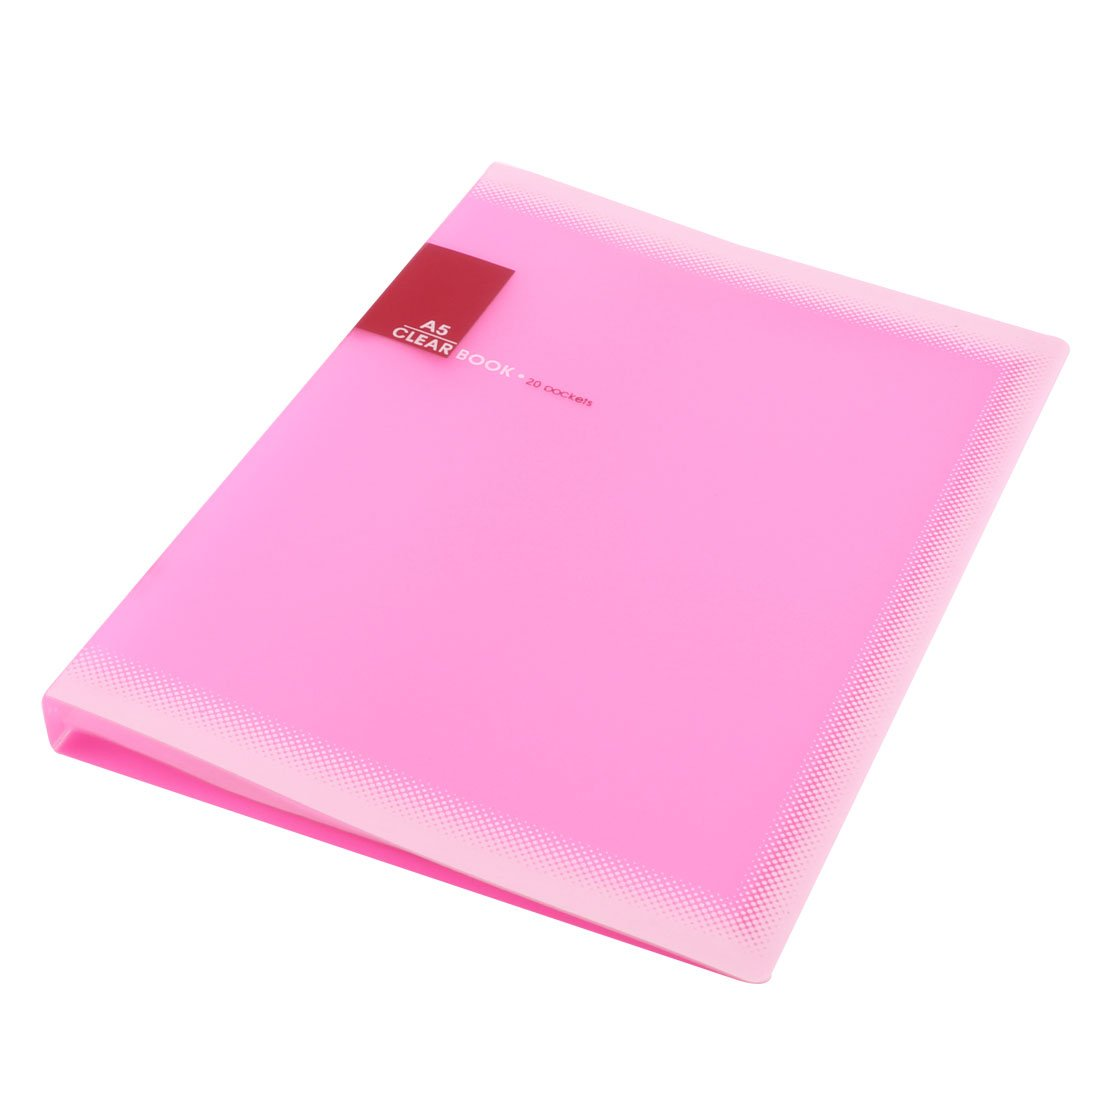 SOSW-Plastic A5 Paper 20 Pockets File Document Folder Holder, Pink